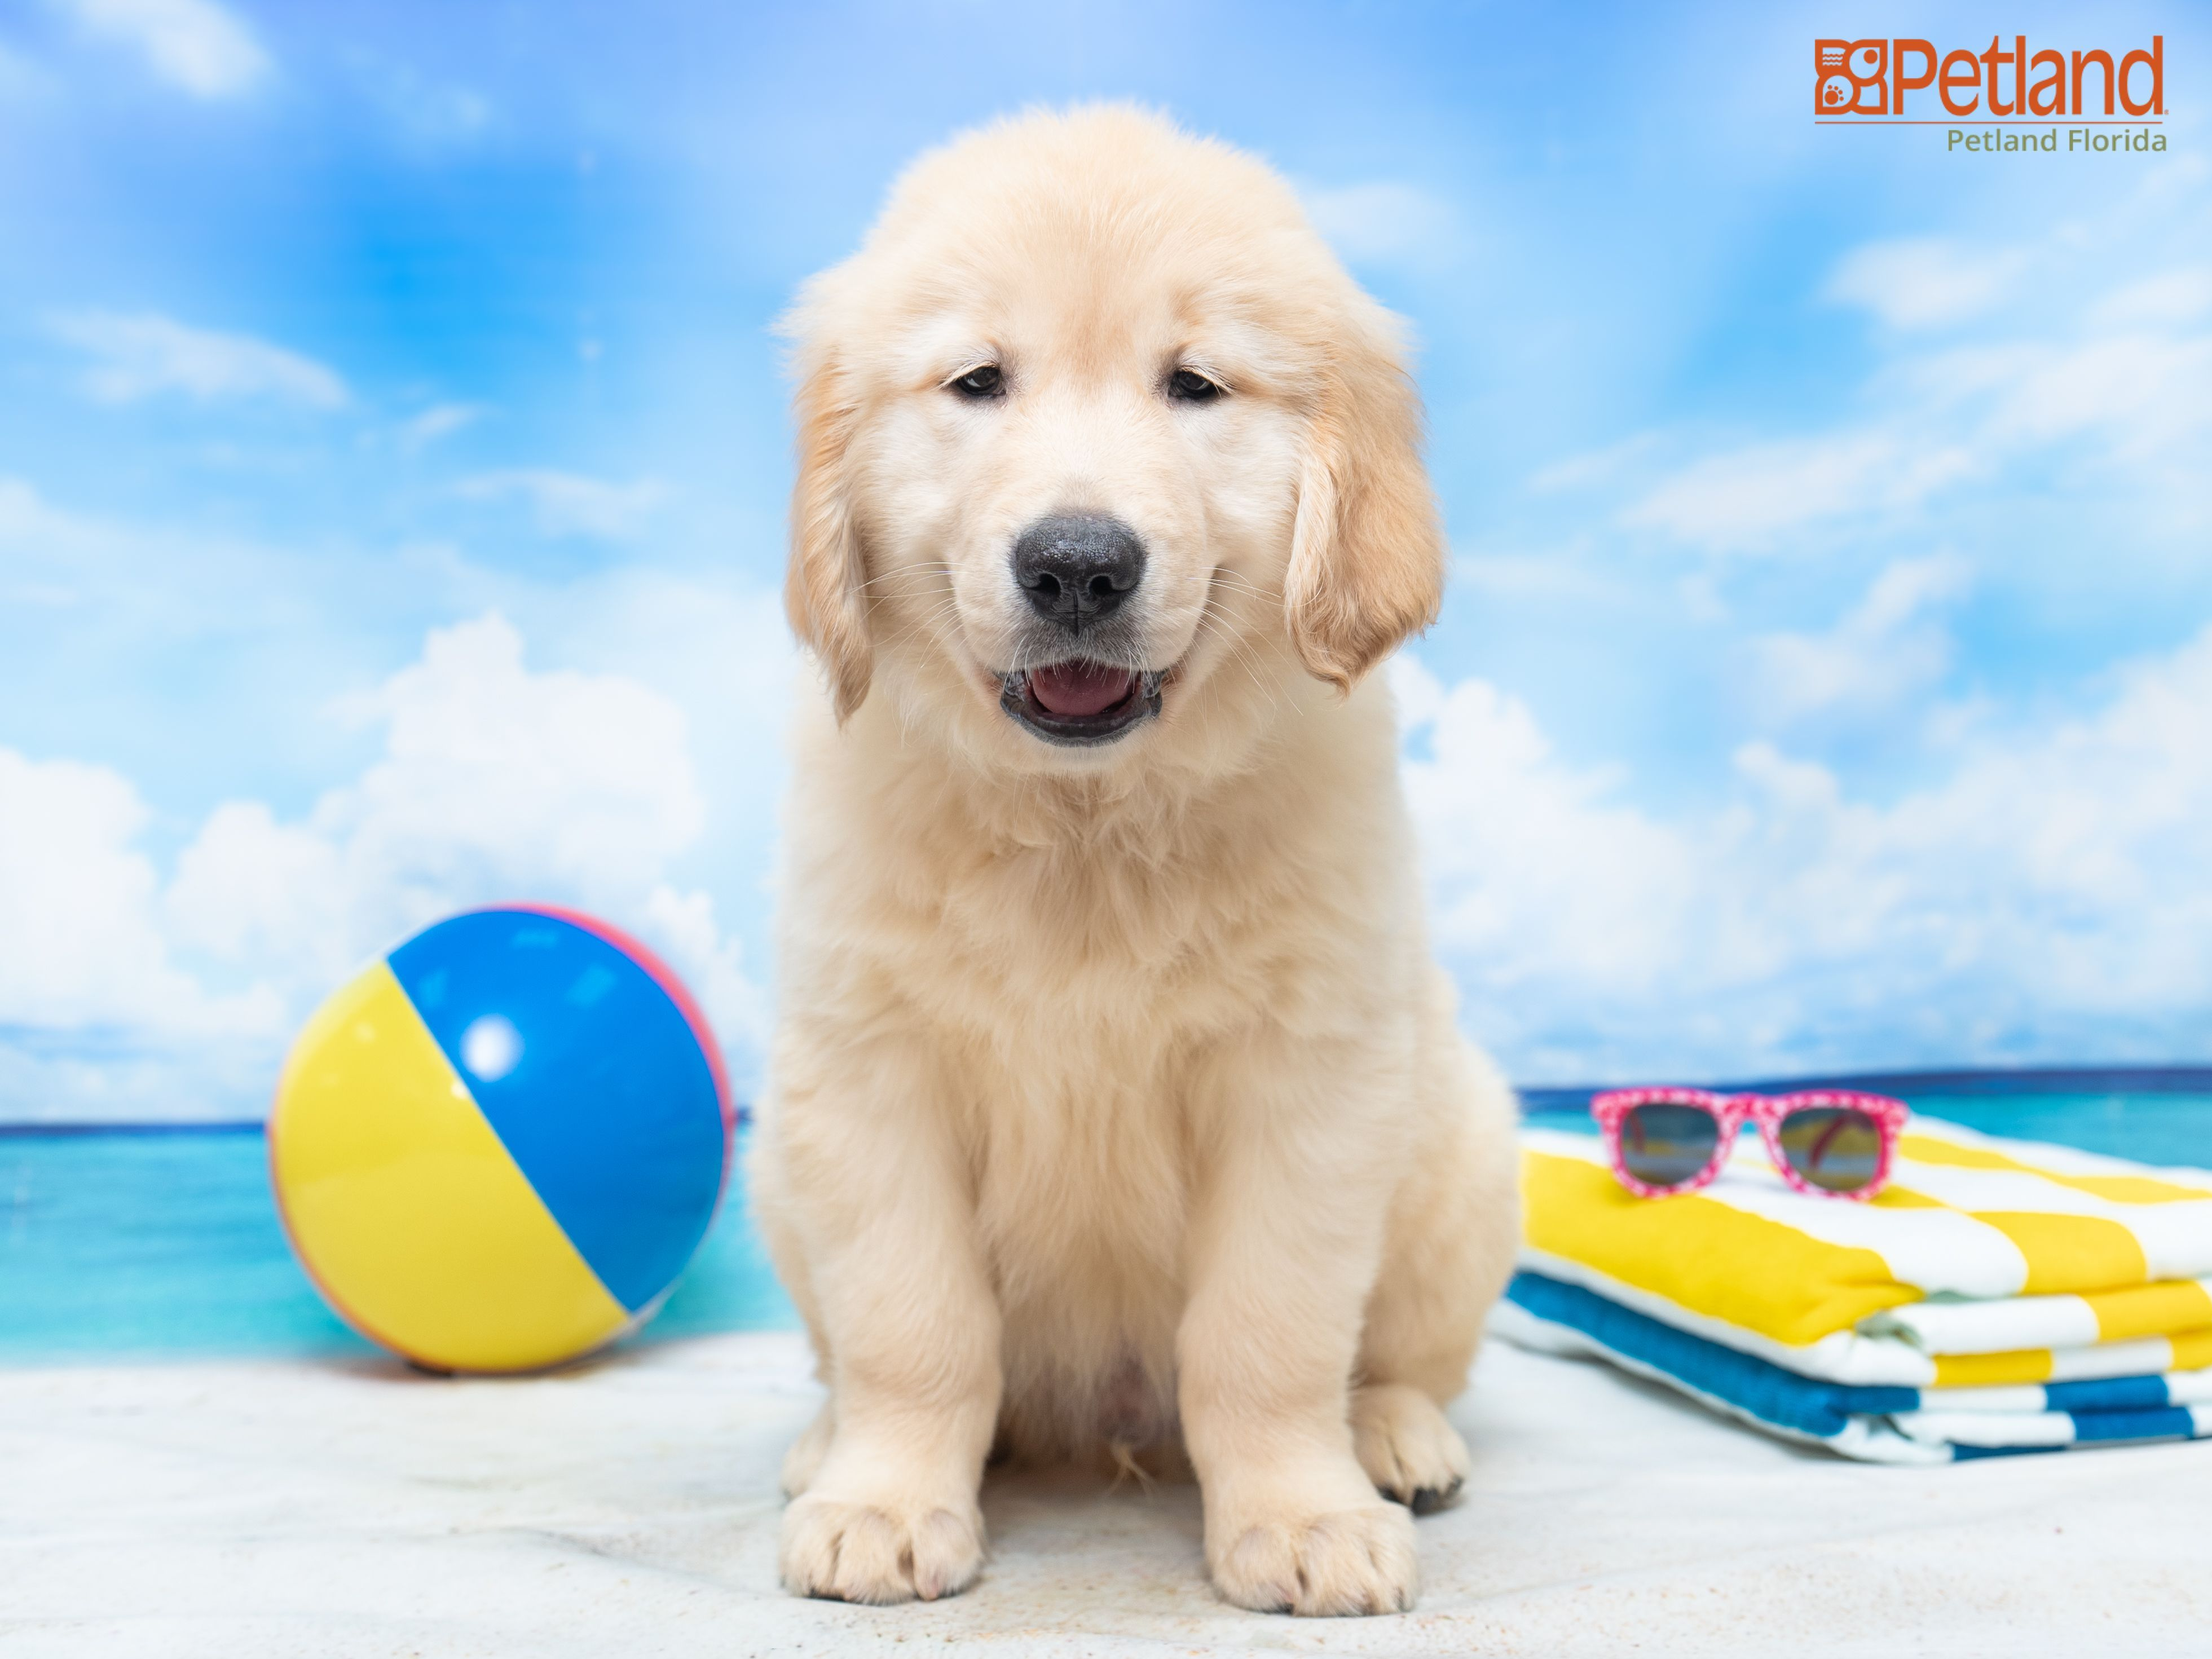 Petland Florida Has Golden Retriever Puppies For Sale Check Out All Our Available Puppies Goldenretriever Puppy Do In 2020 Puppy Friends Retriever Puppy Puppies